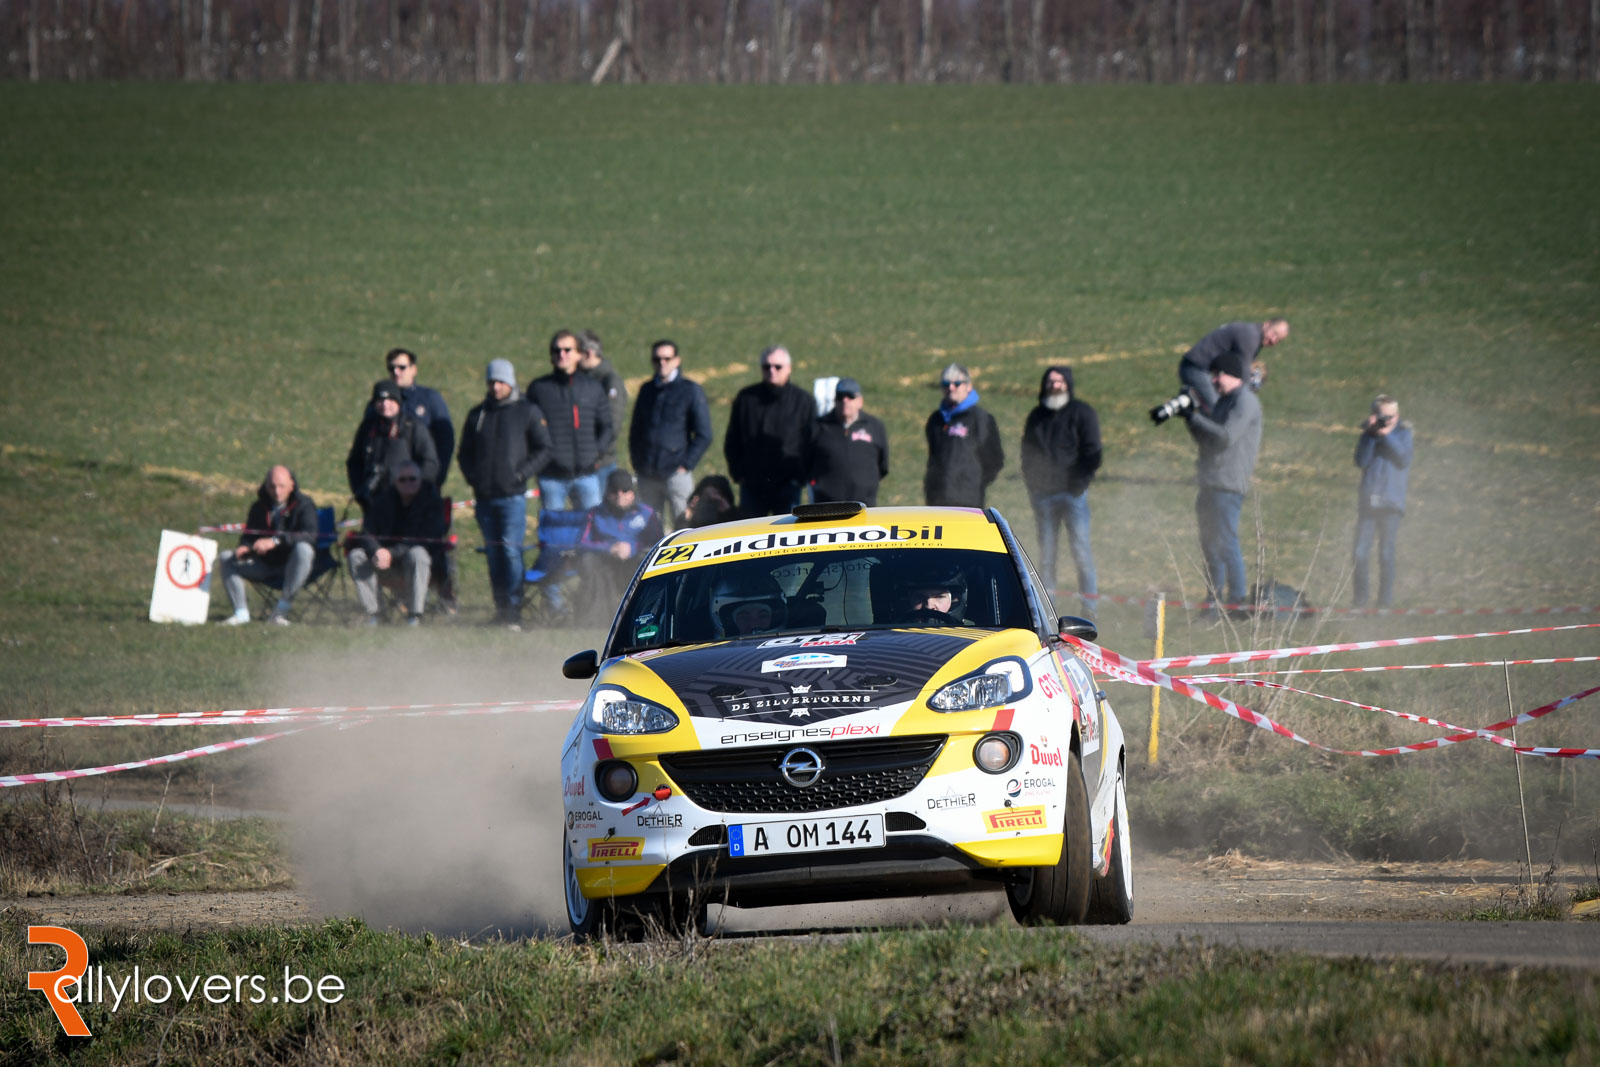 Spa Rally - Pirelli Junior BRC - Grégoire Munster in het ritme